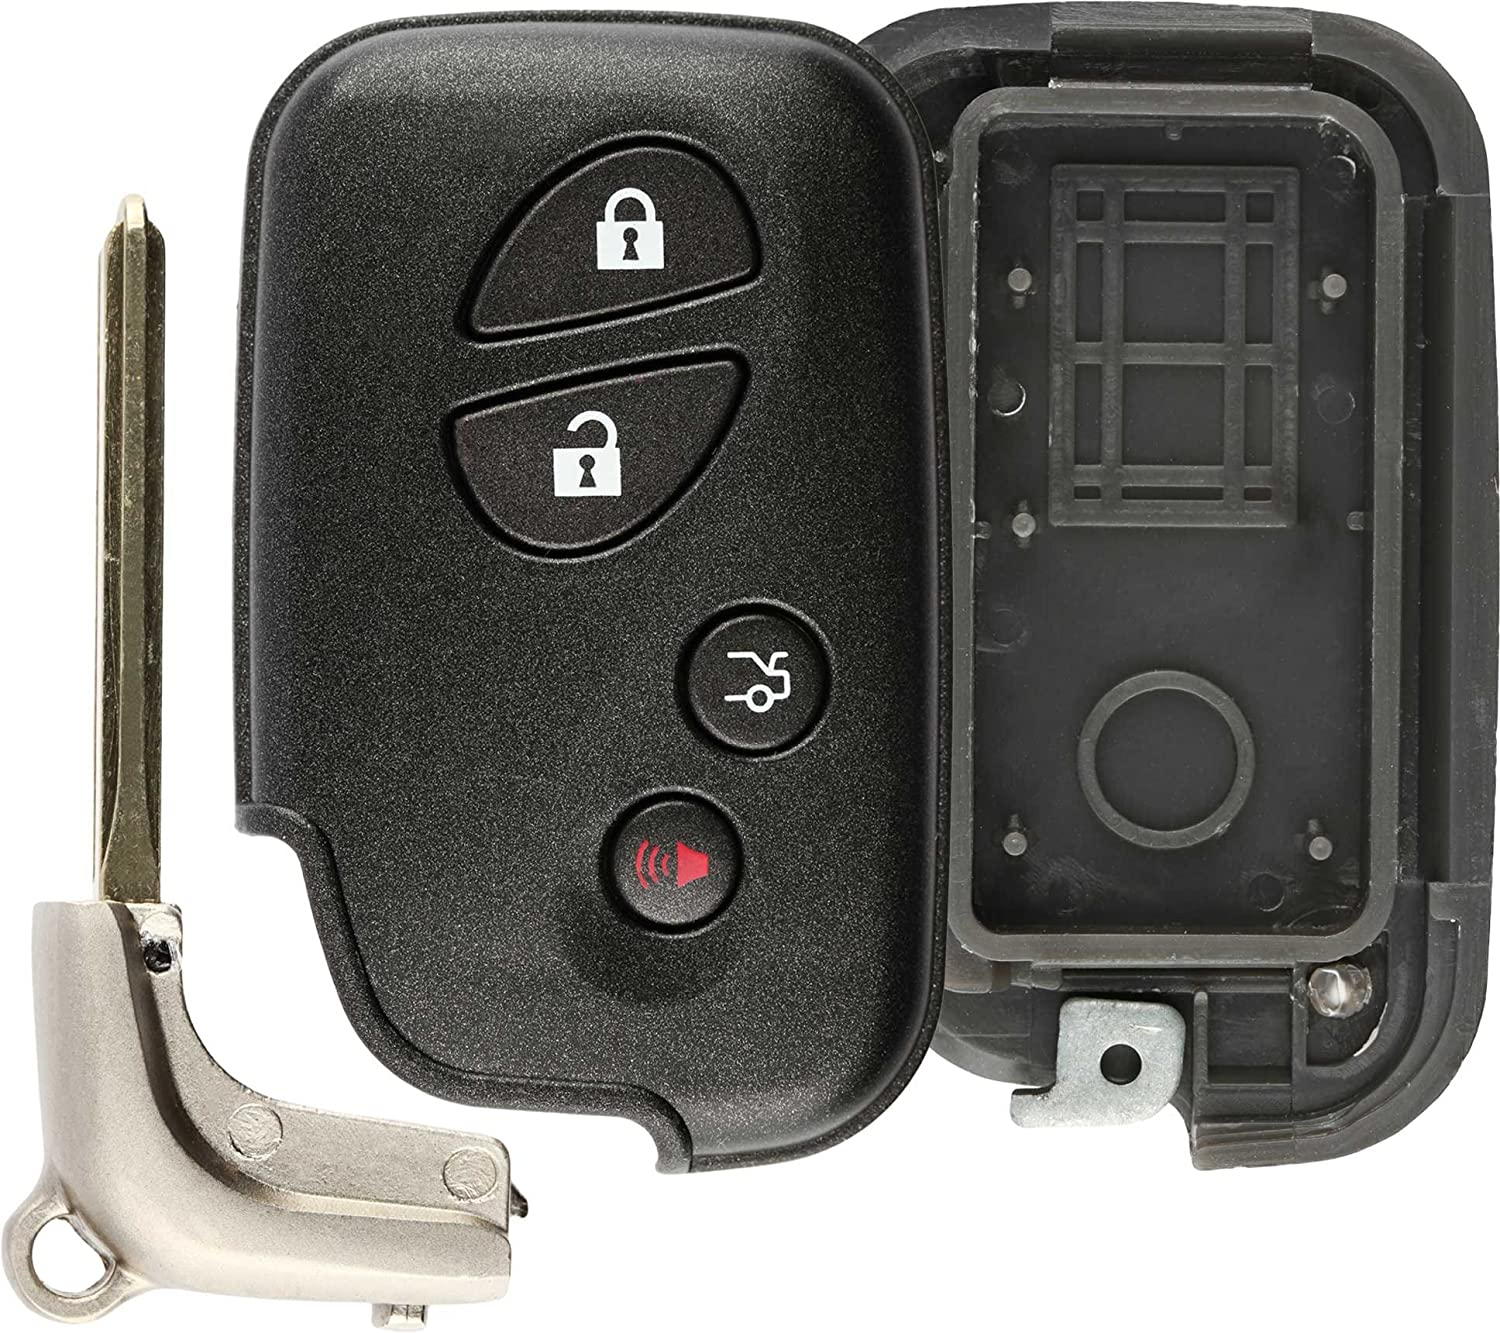 KeylessOption Keyless Entry Remote Ranking Fixed price for sale TOP20 Key Car C Fob Smart Shell